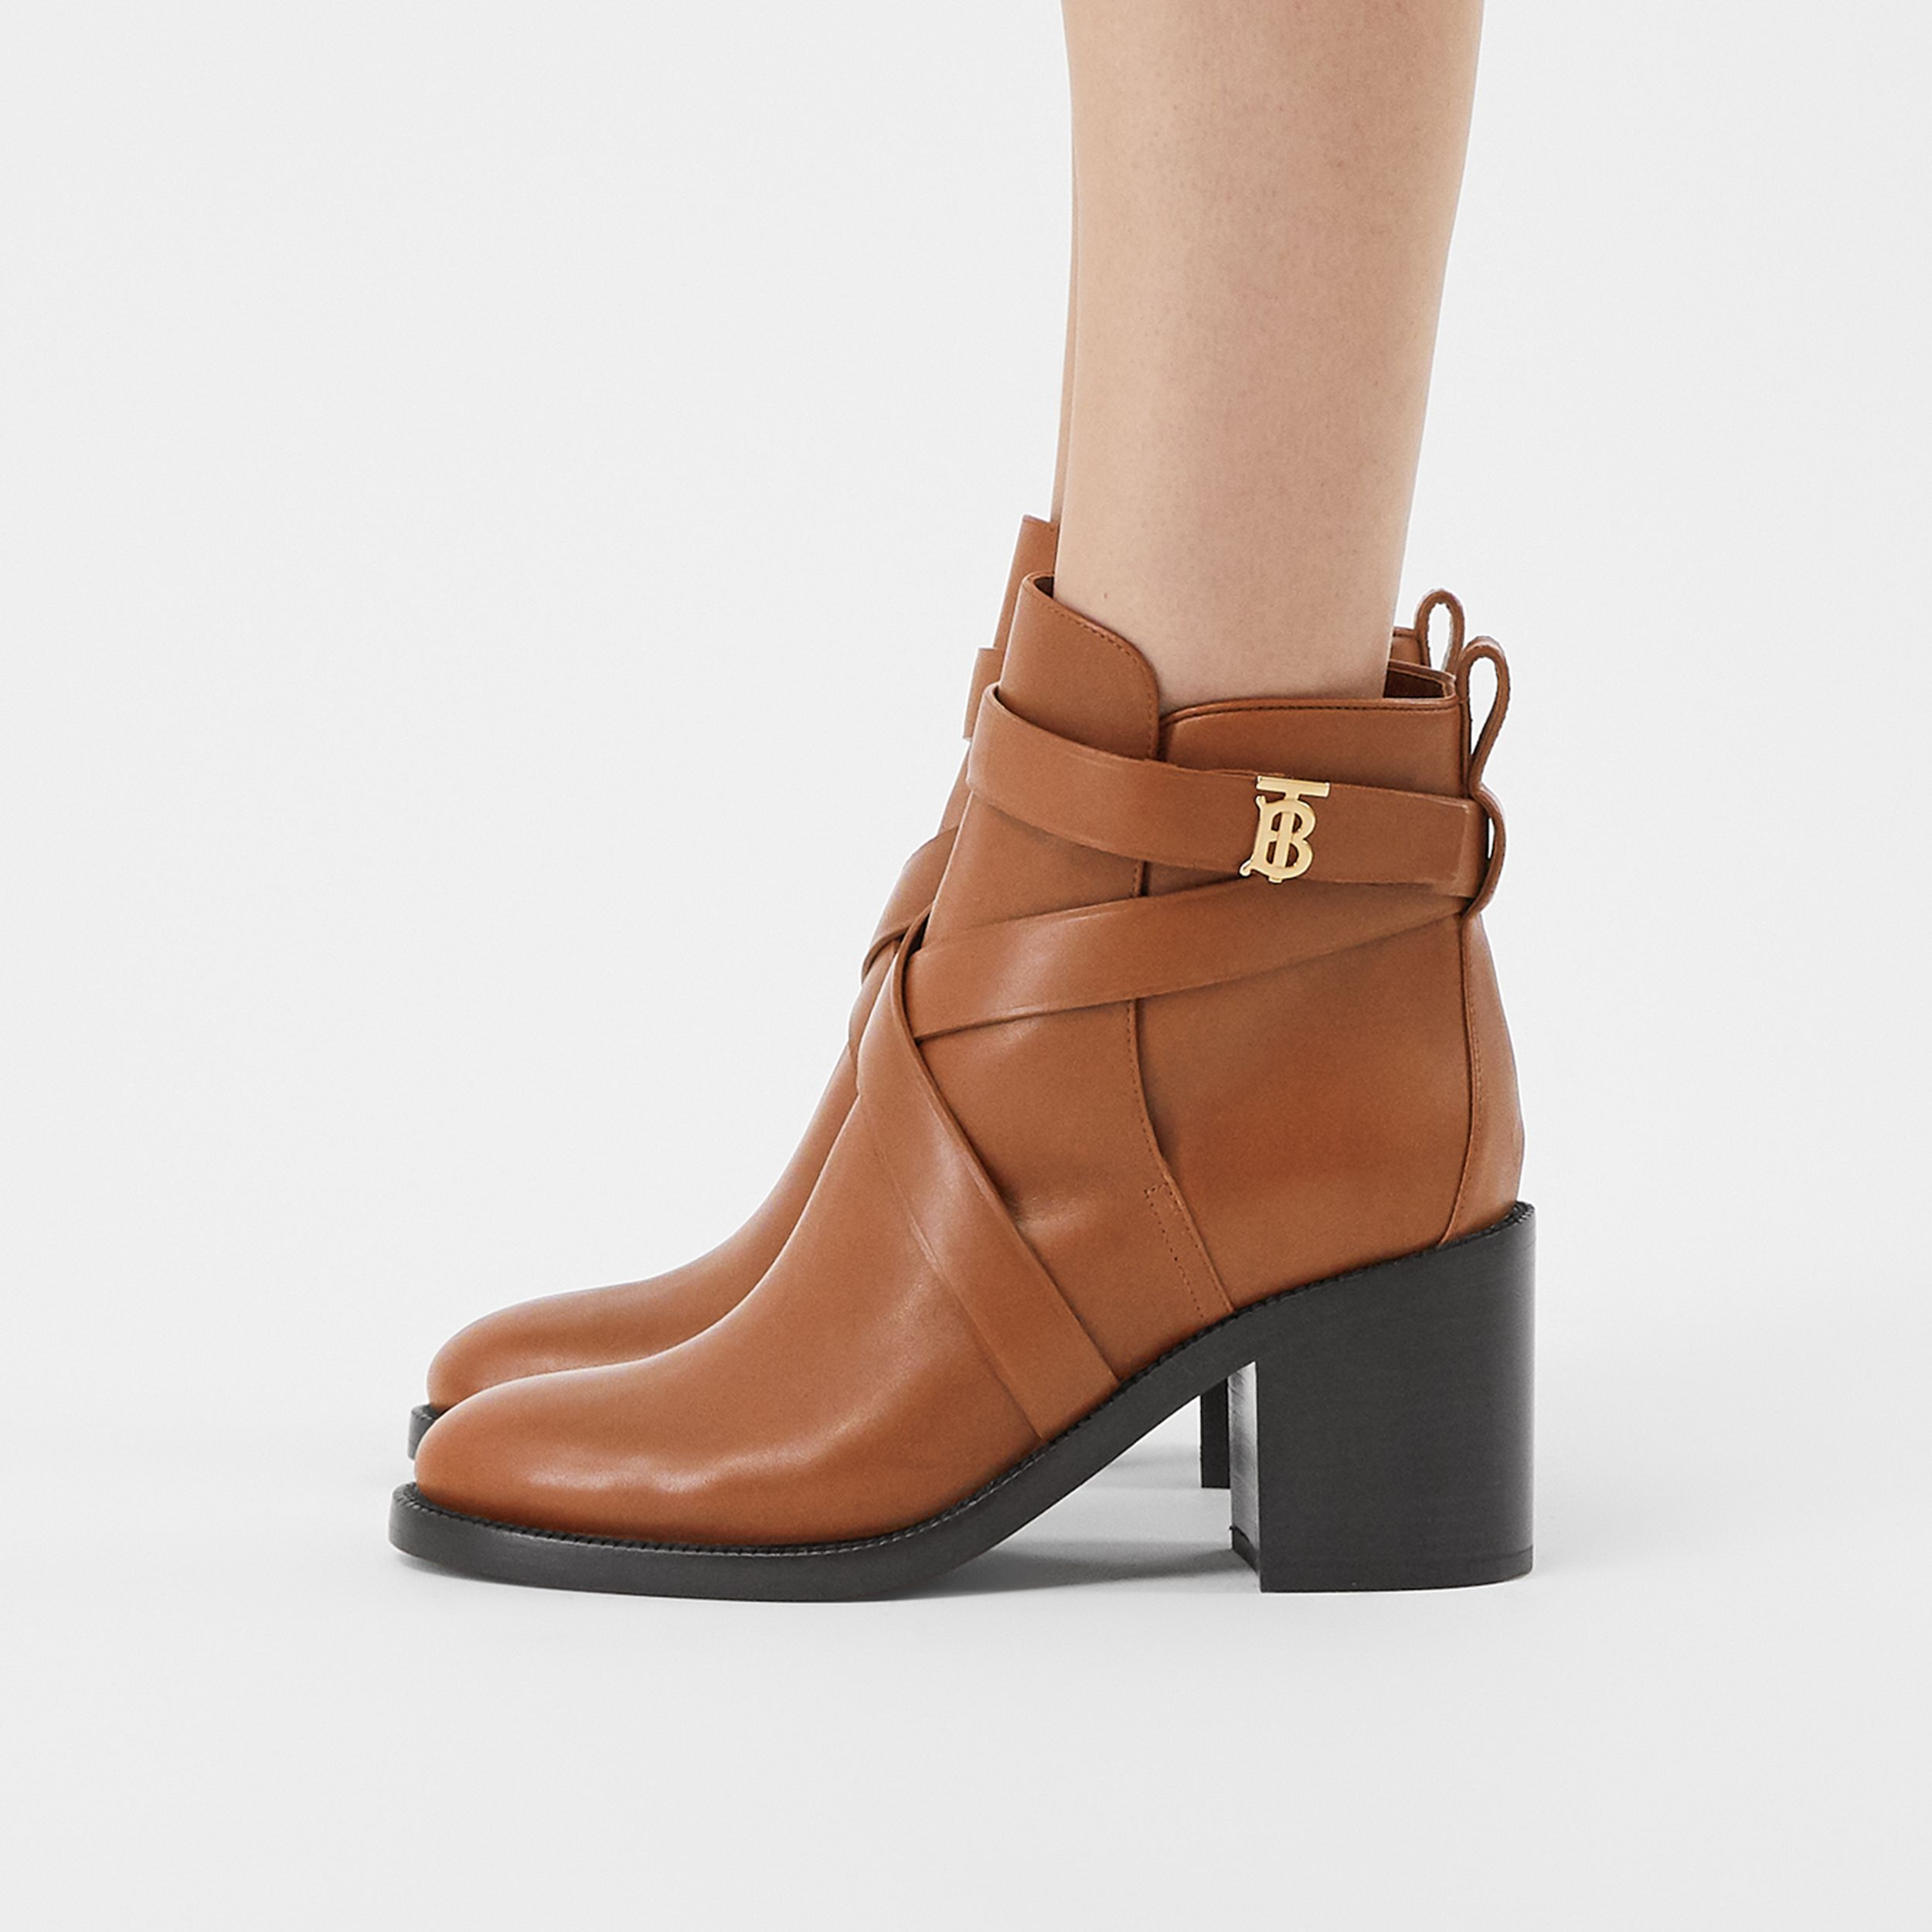 Monogram Motif Leather Ankle Boots in Tan - Women | Burberry United Kingdom - 3